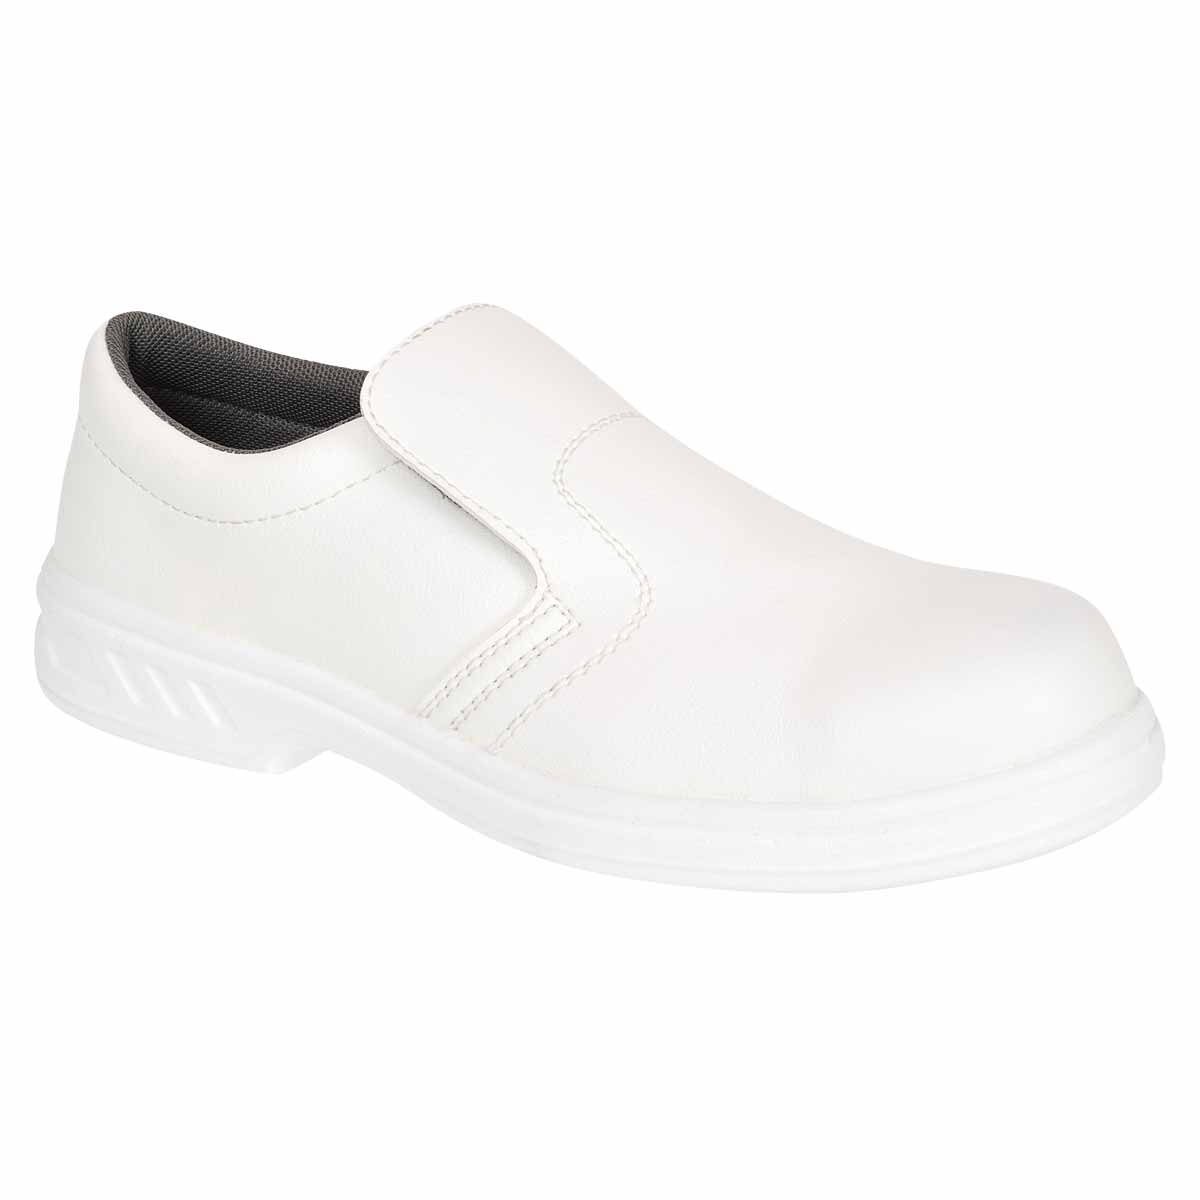 Occupational Slip On Shoe - FW58